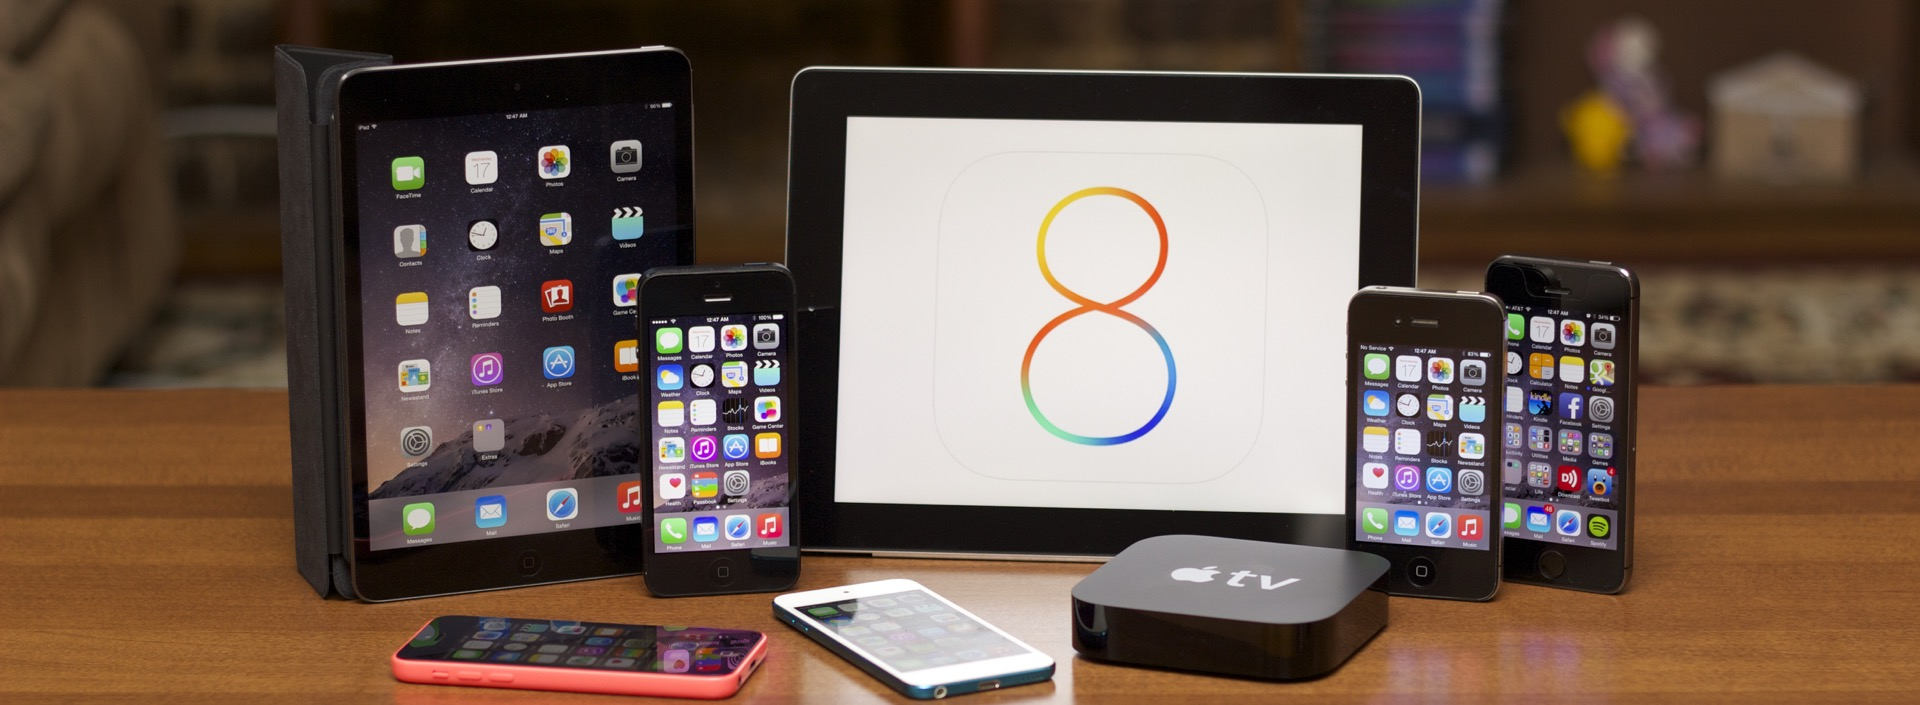 iOS 8, thoroughly reviewed